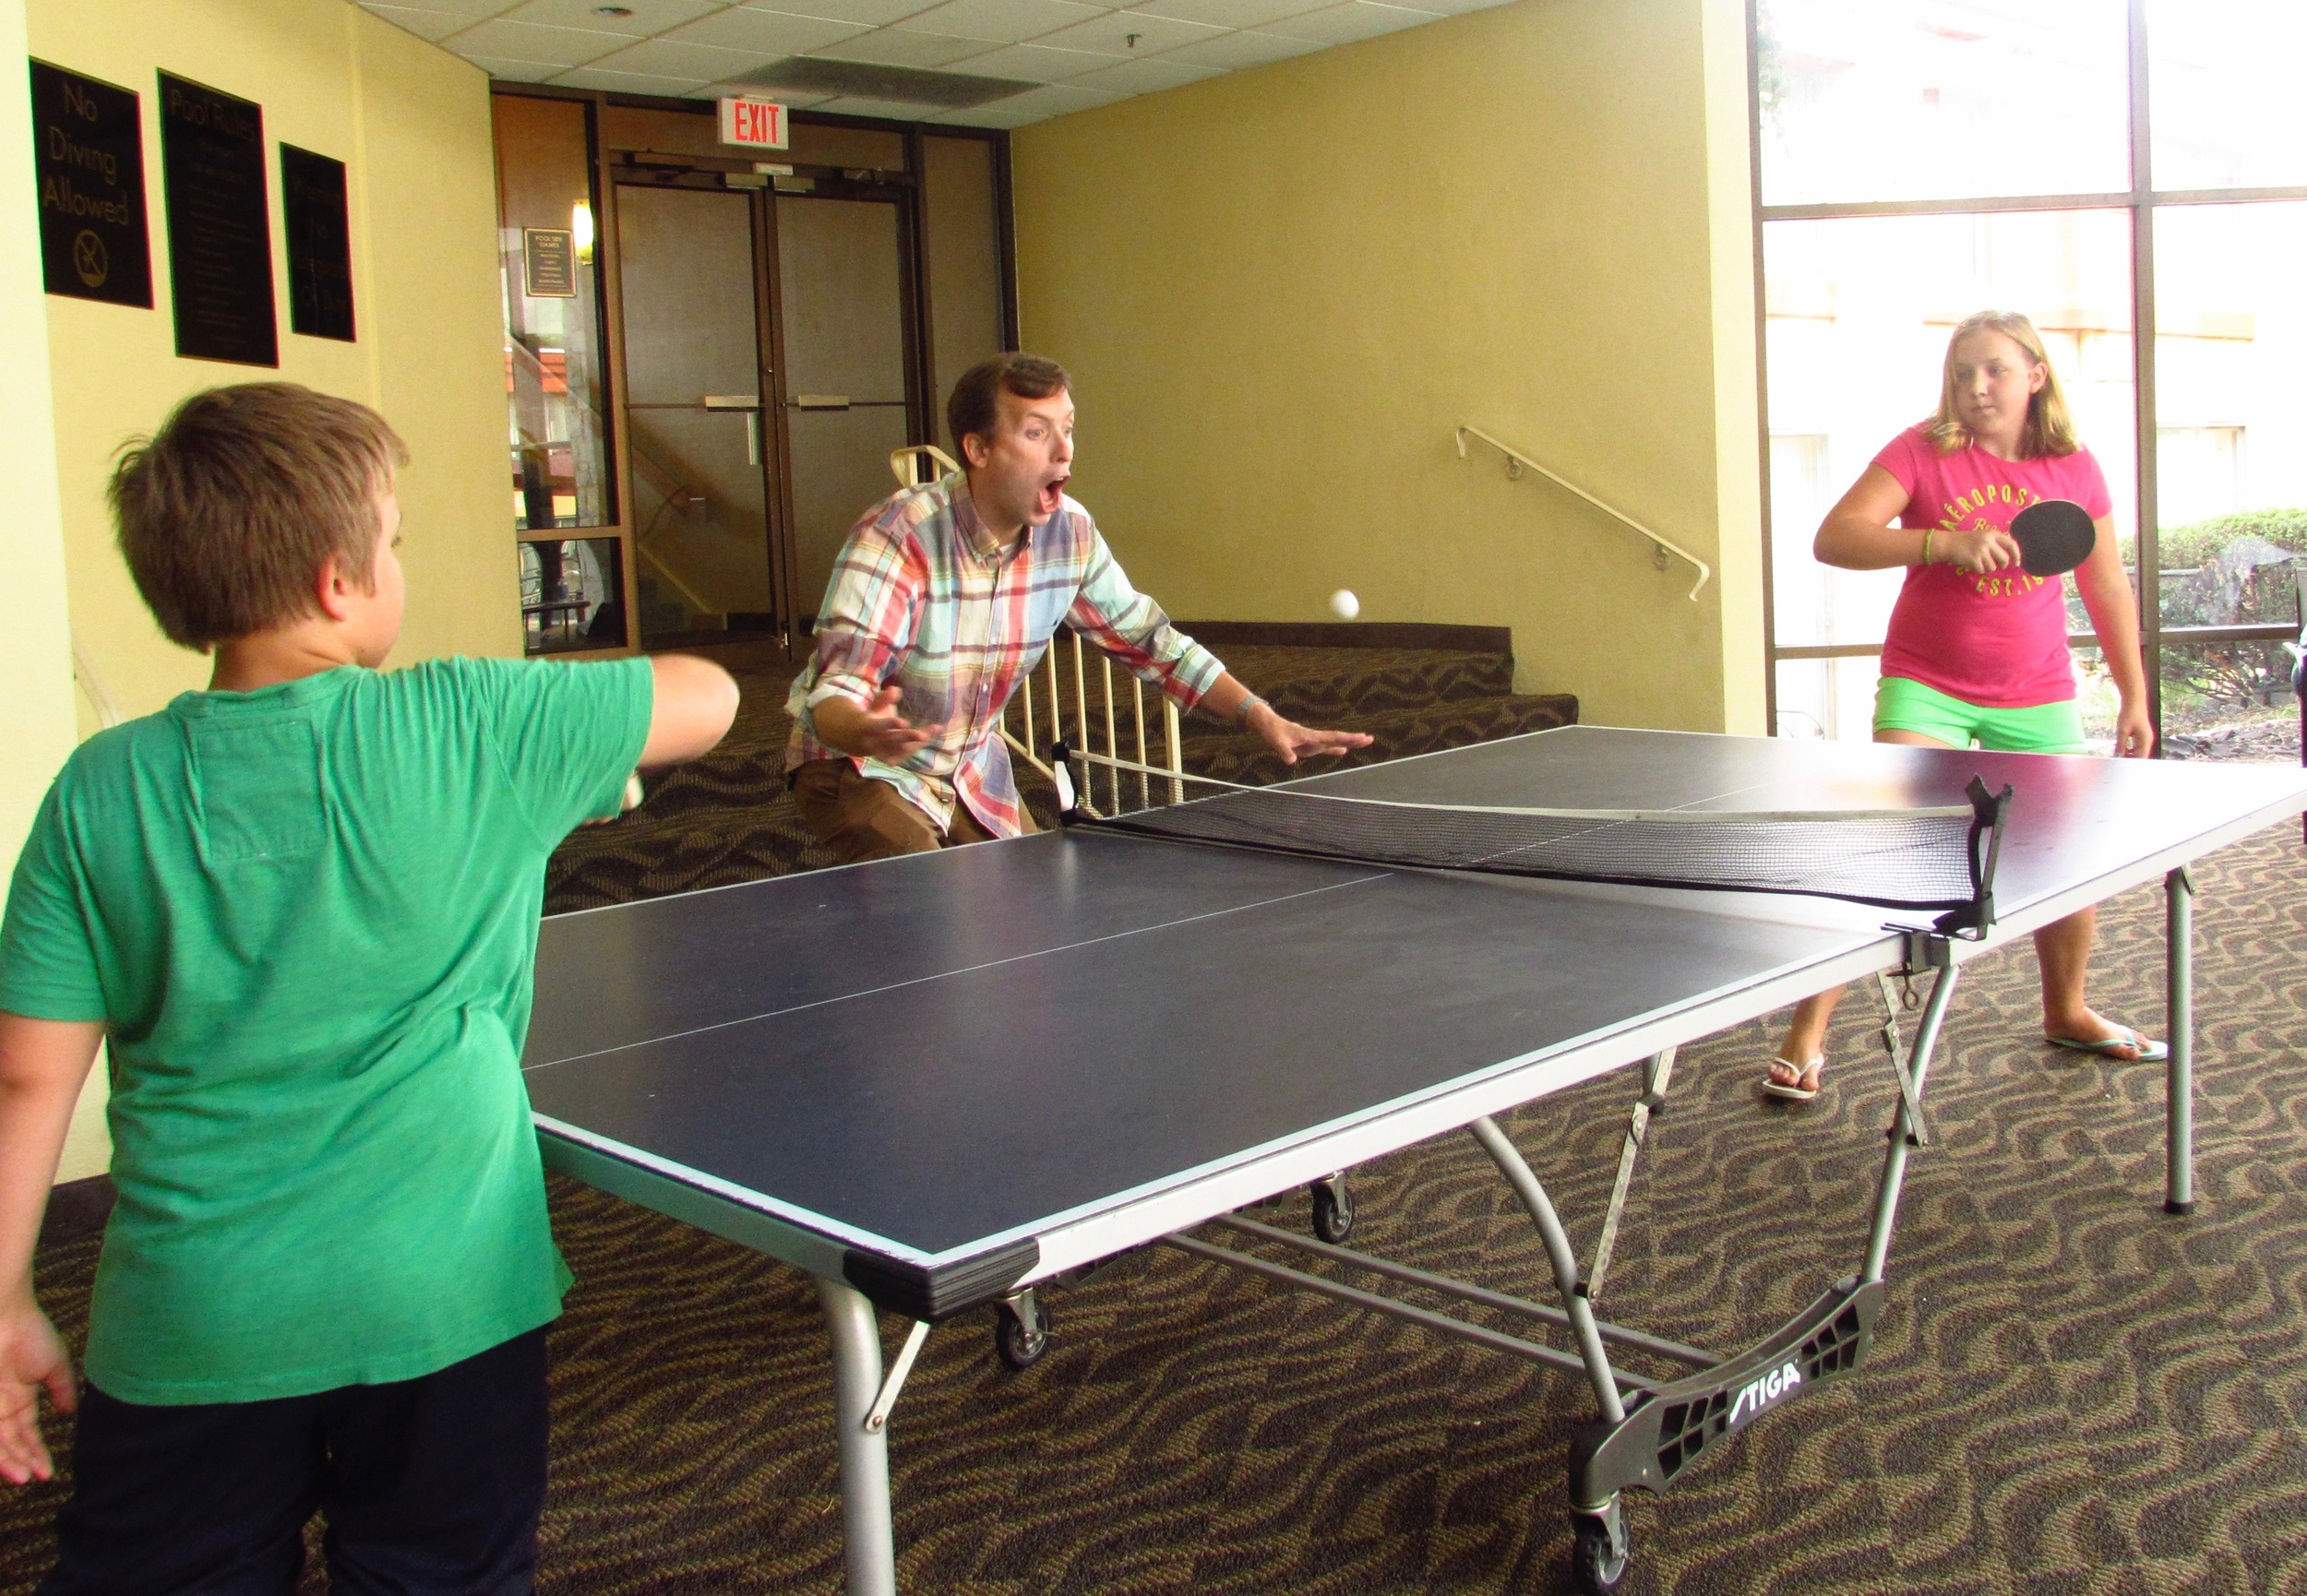 Uncle Jason referees a game of ping pong with Annie and Riley